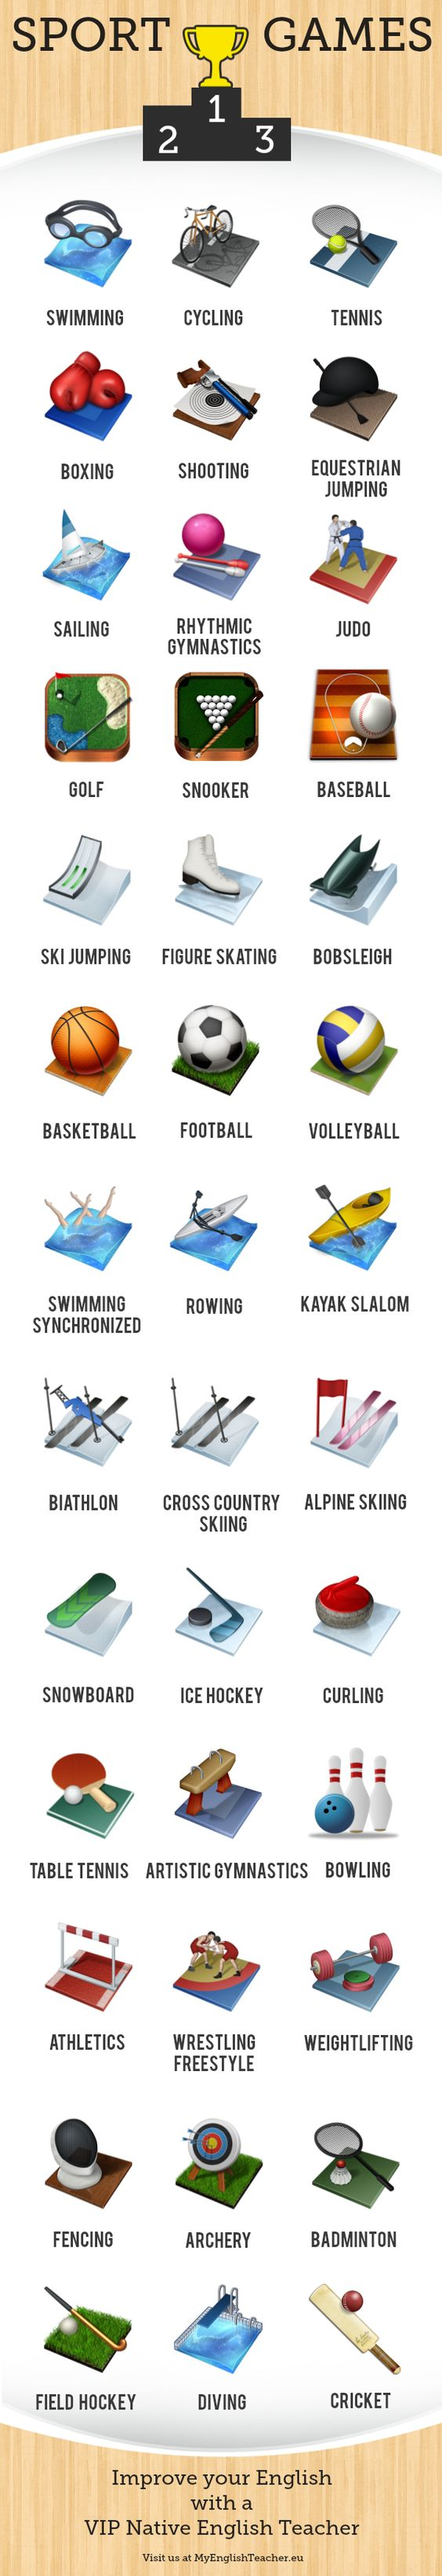 sports vocabulary english fce sport Flashcards - Quizlet